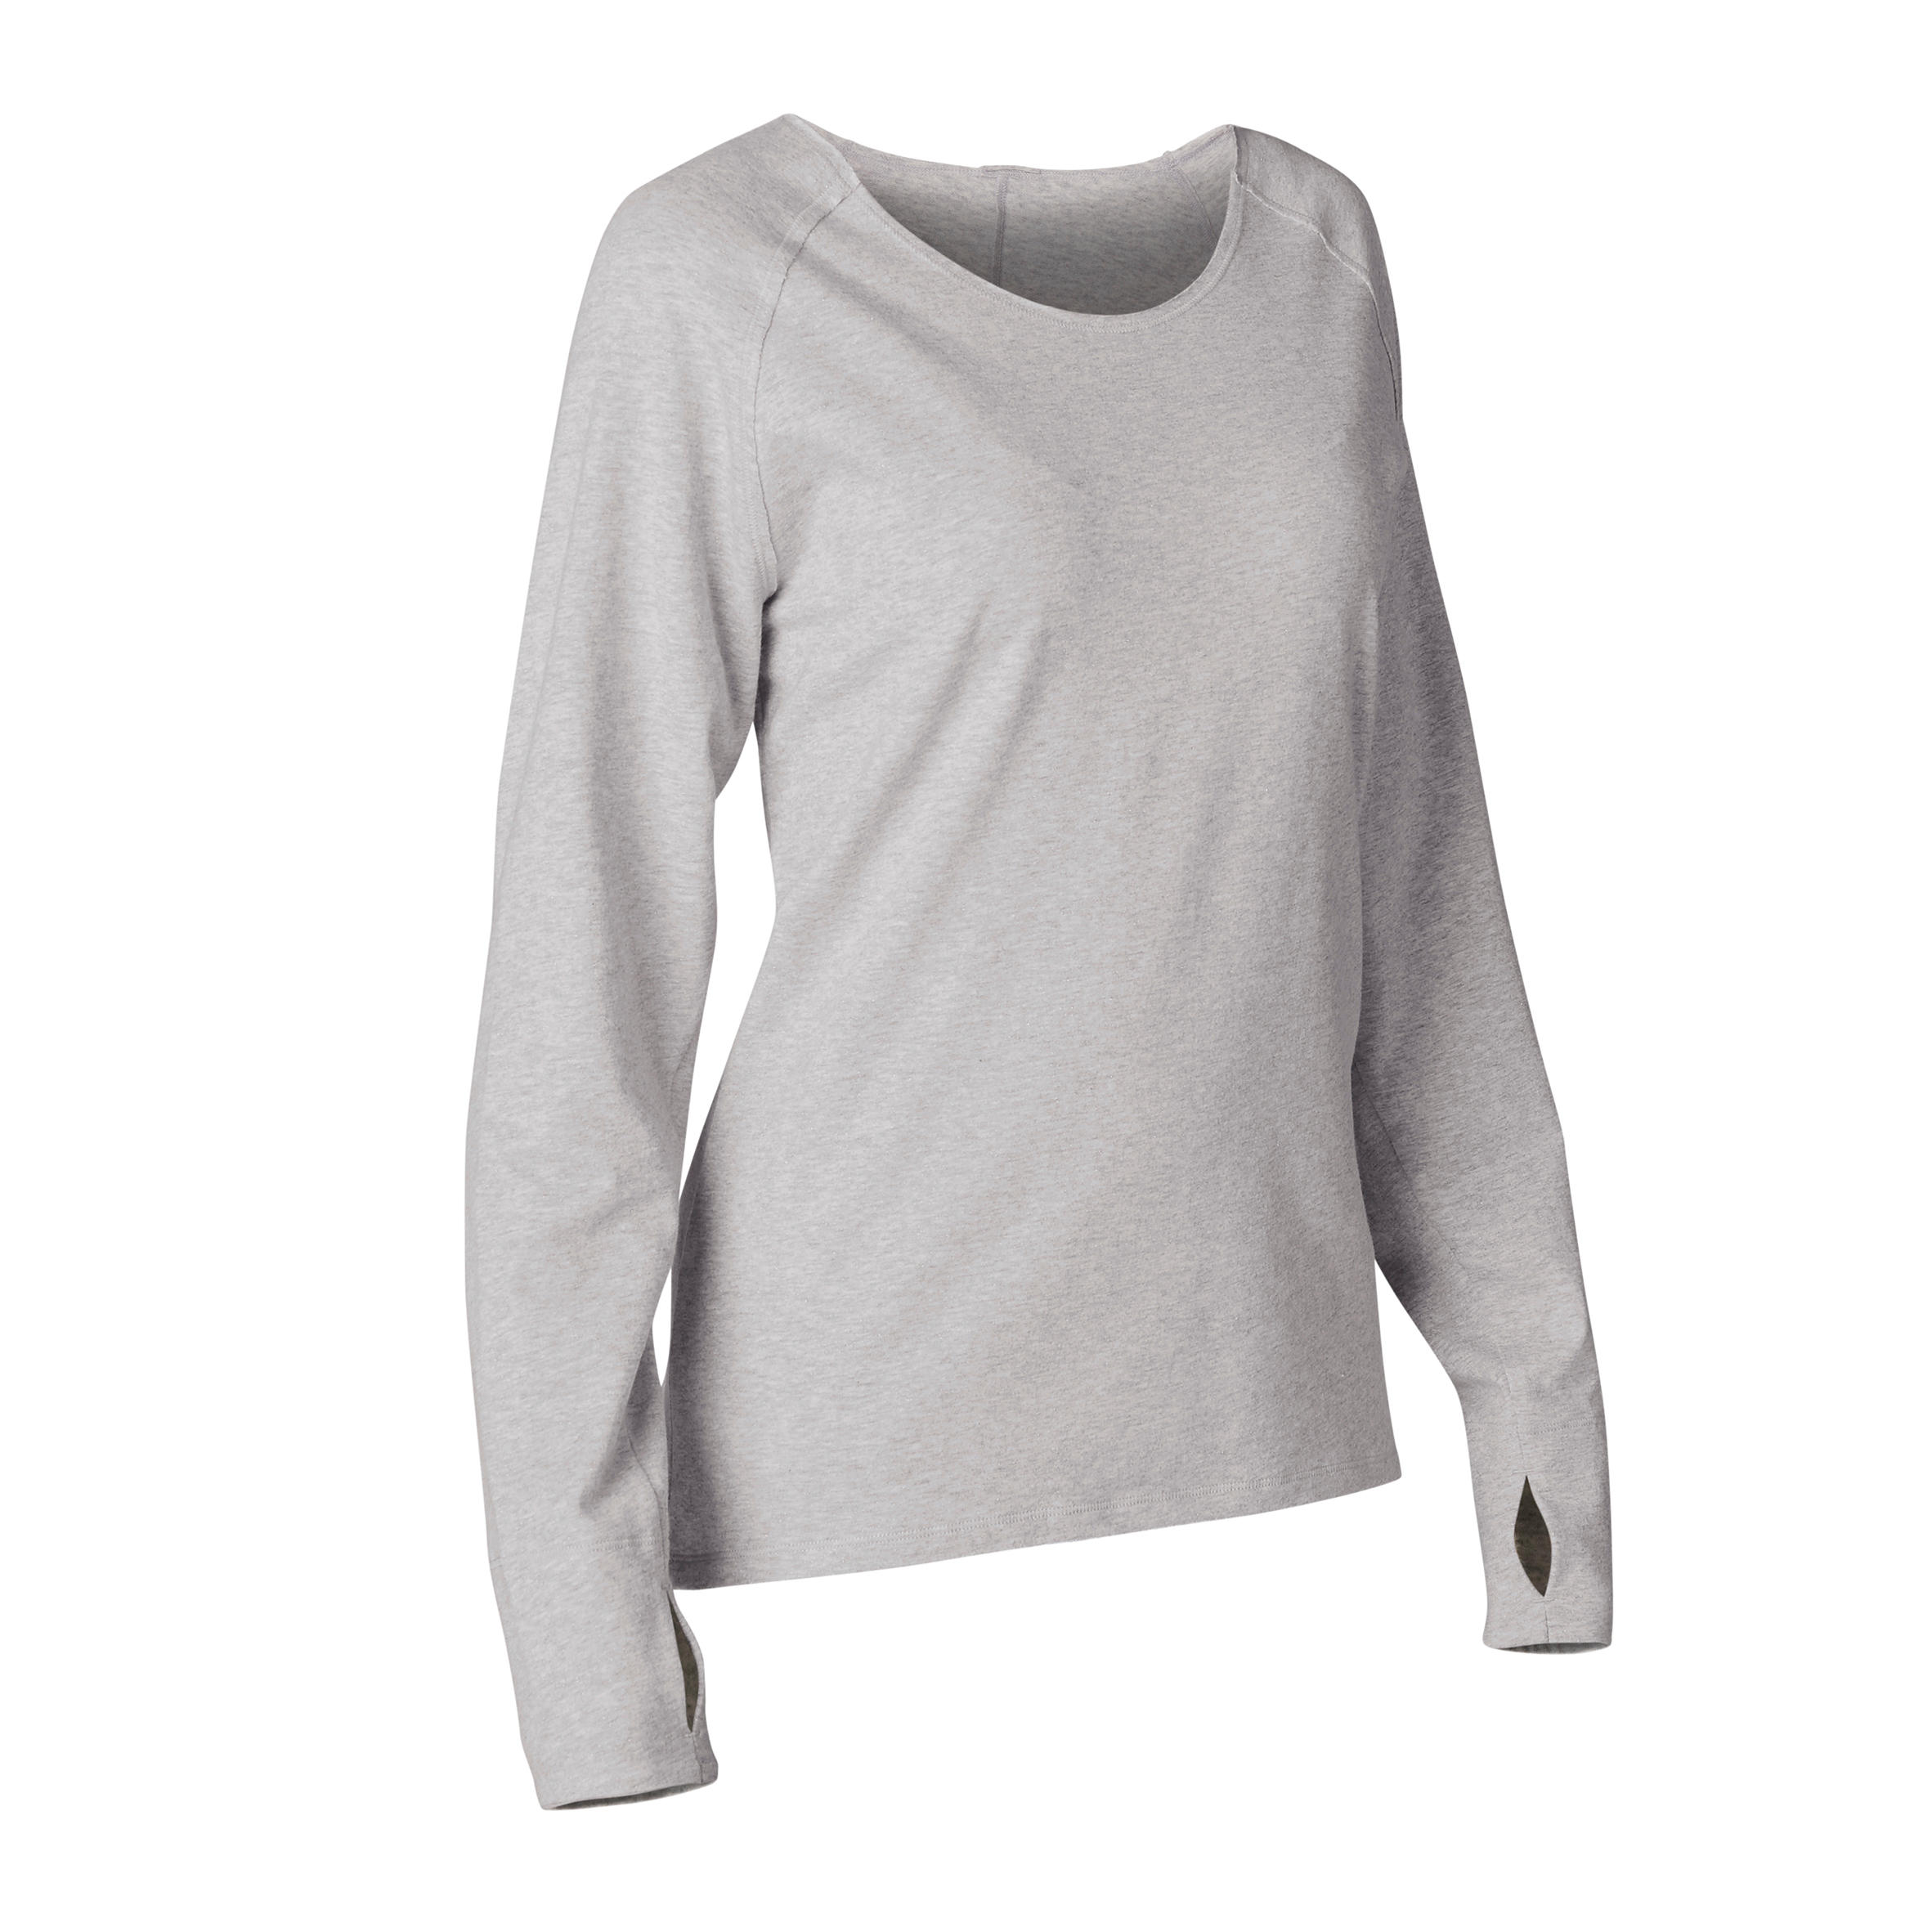 Organic Cotton Long-Sleeved Yoga T-Shirt - Grey